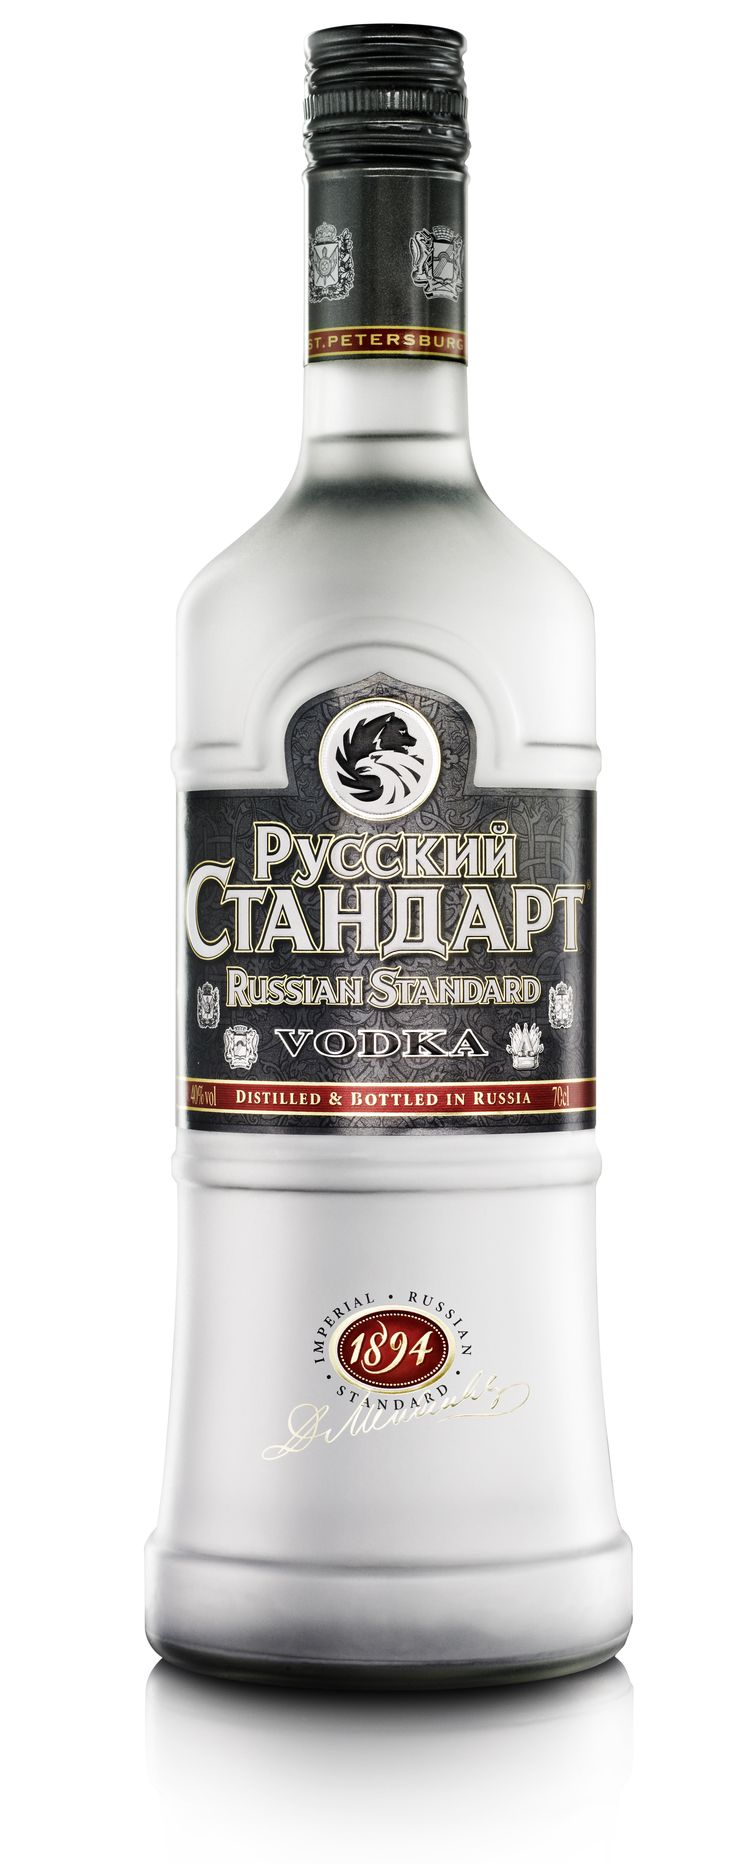 Probably the best Russian Vodka that Americans can get their hands on.